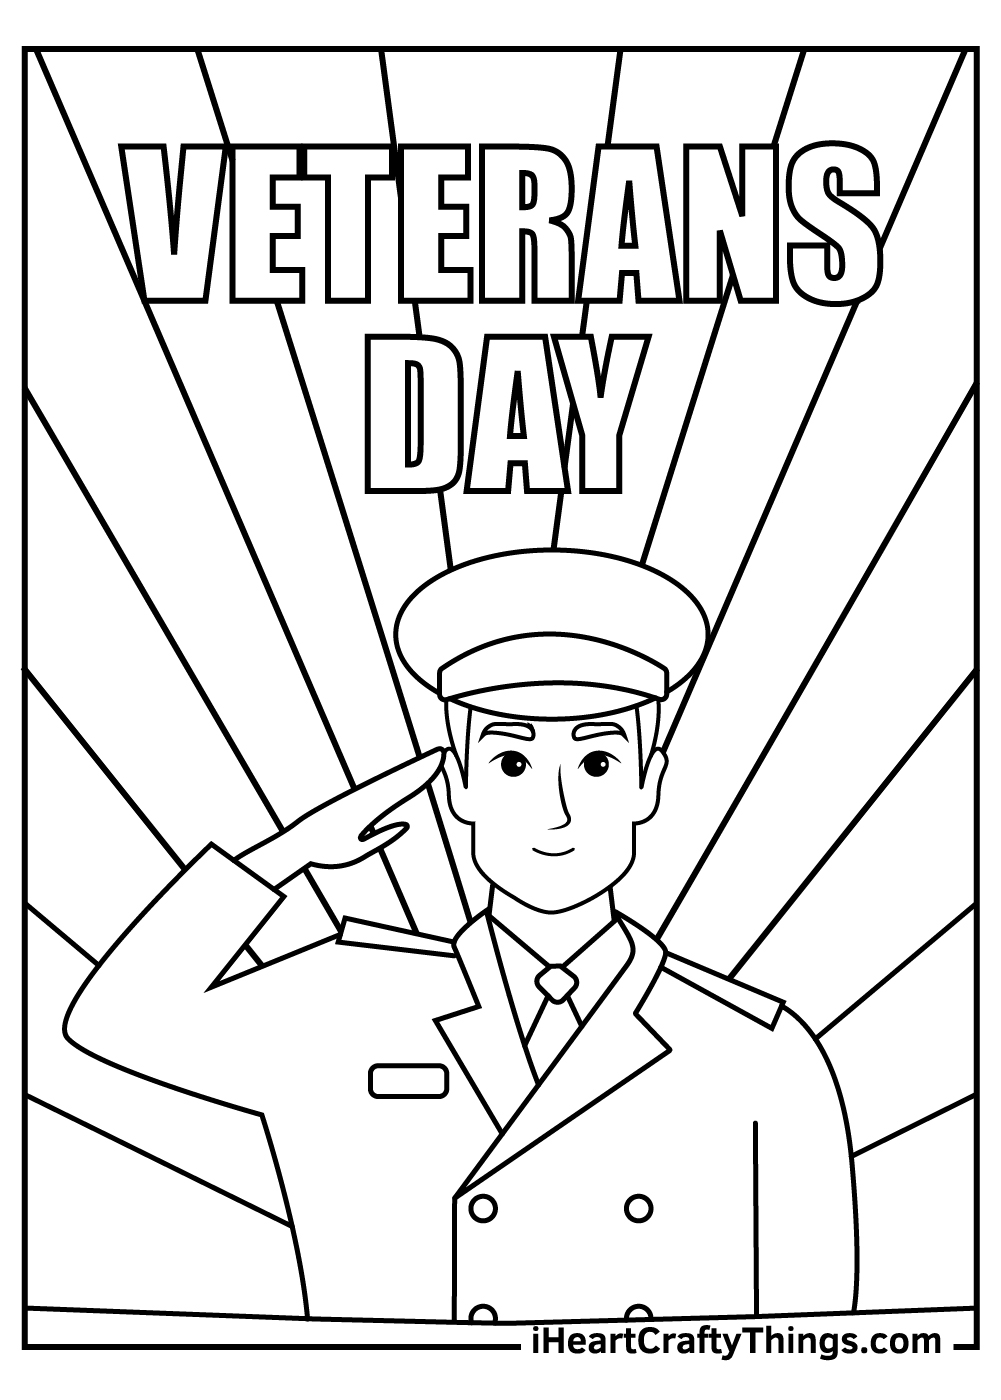 Veteran's Day Coloring Pages free printable